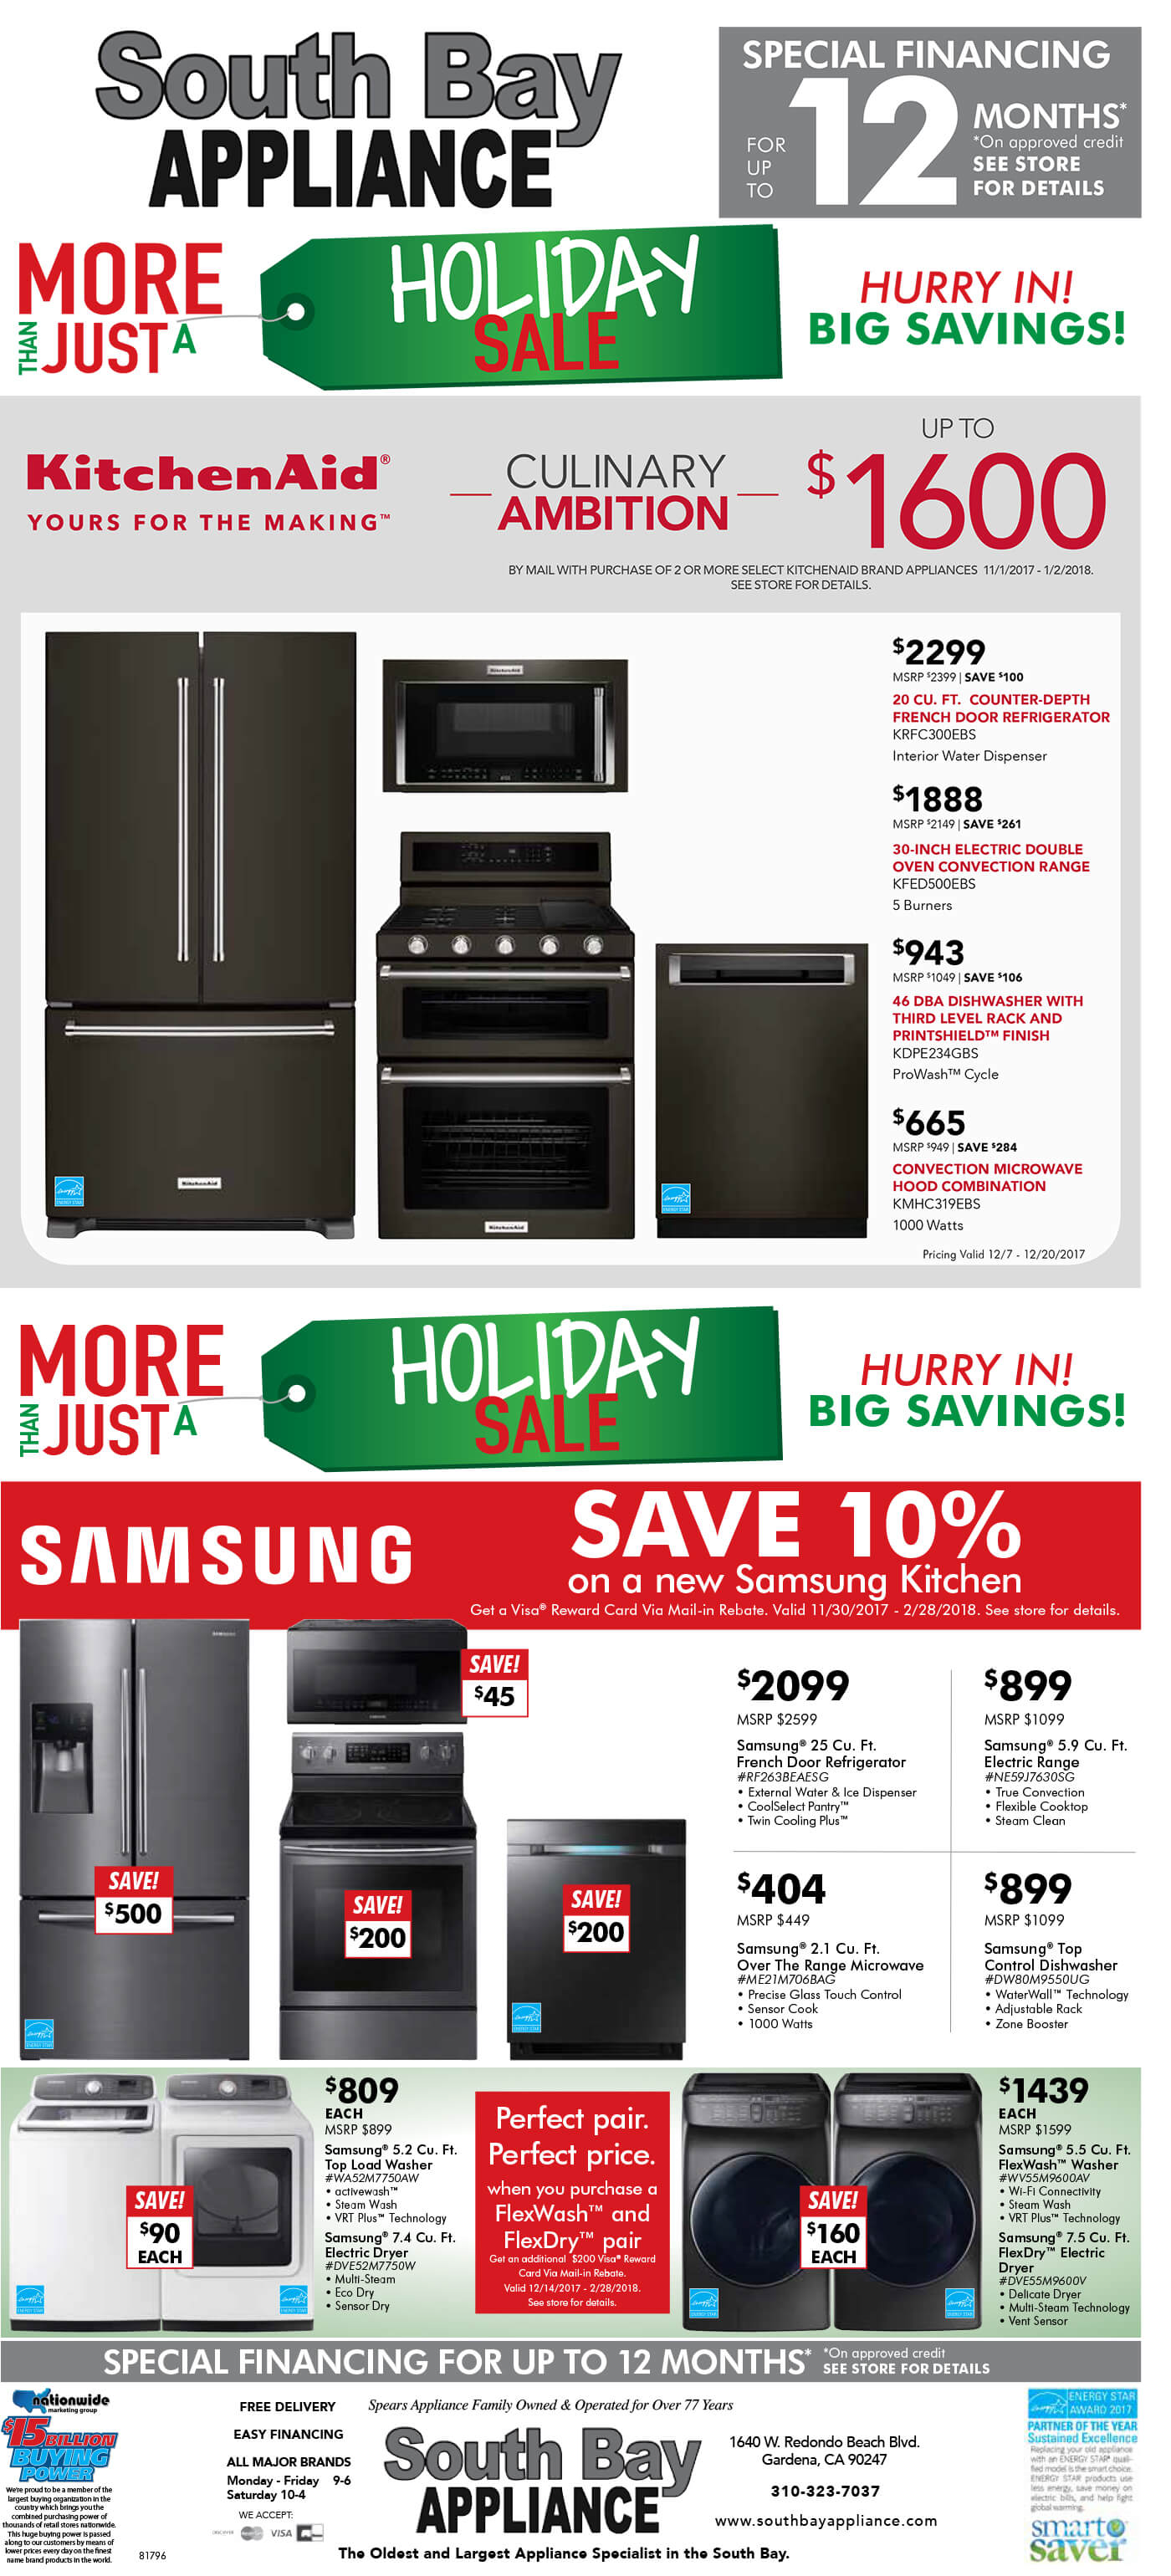 Holiday Sale at South Bay Appliance